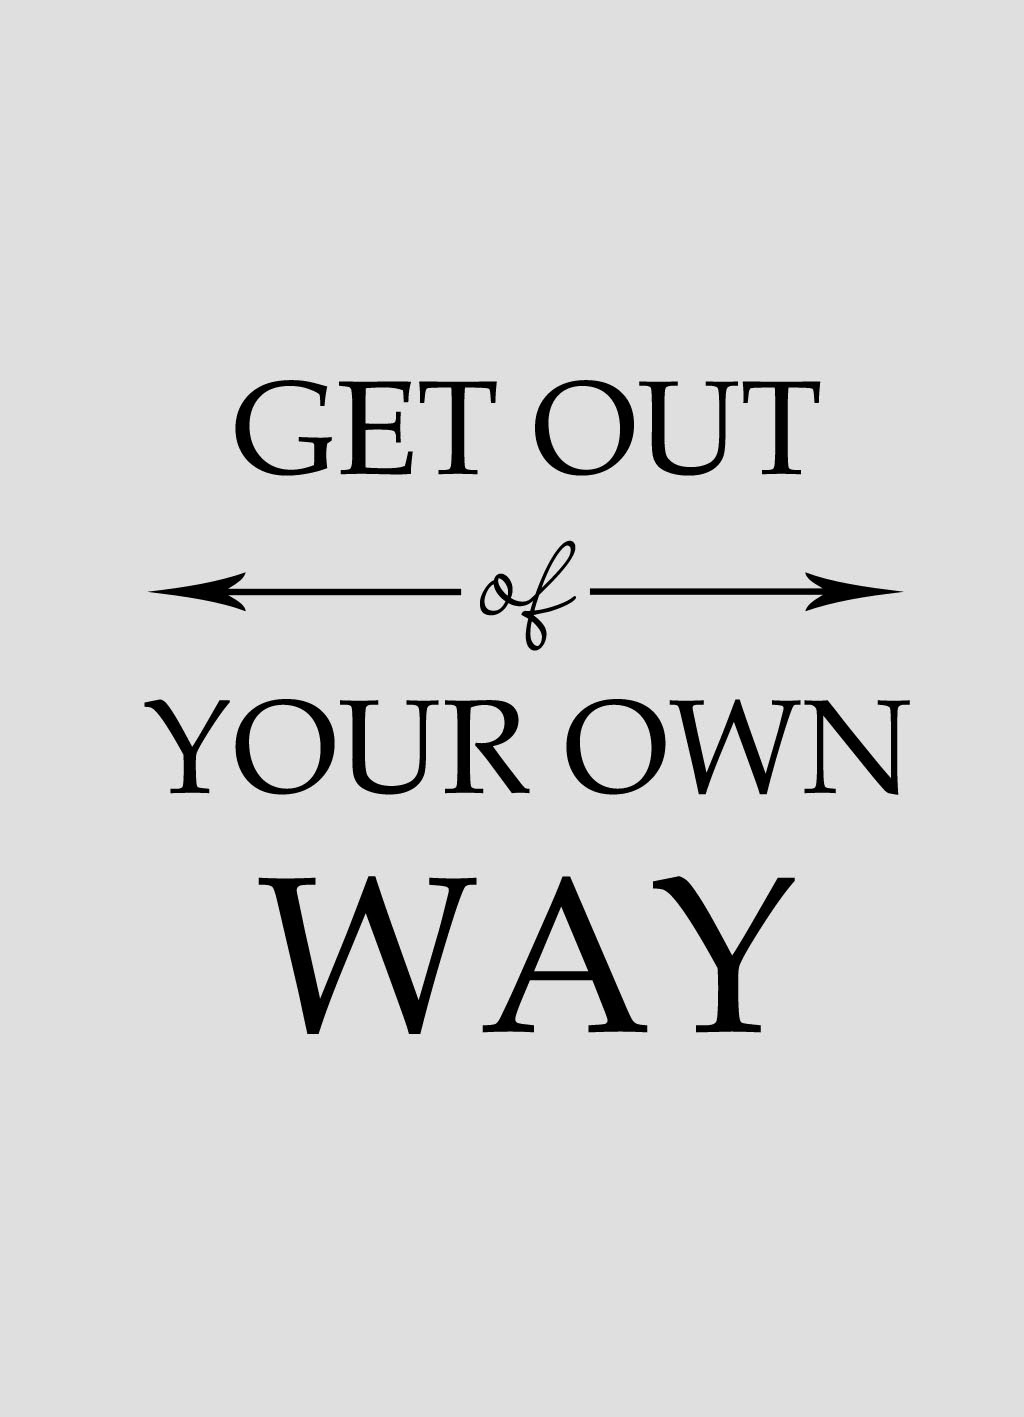 Quote of the Day: Get out of your own way